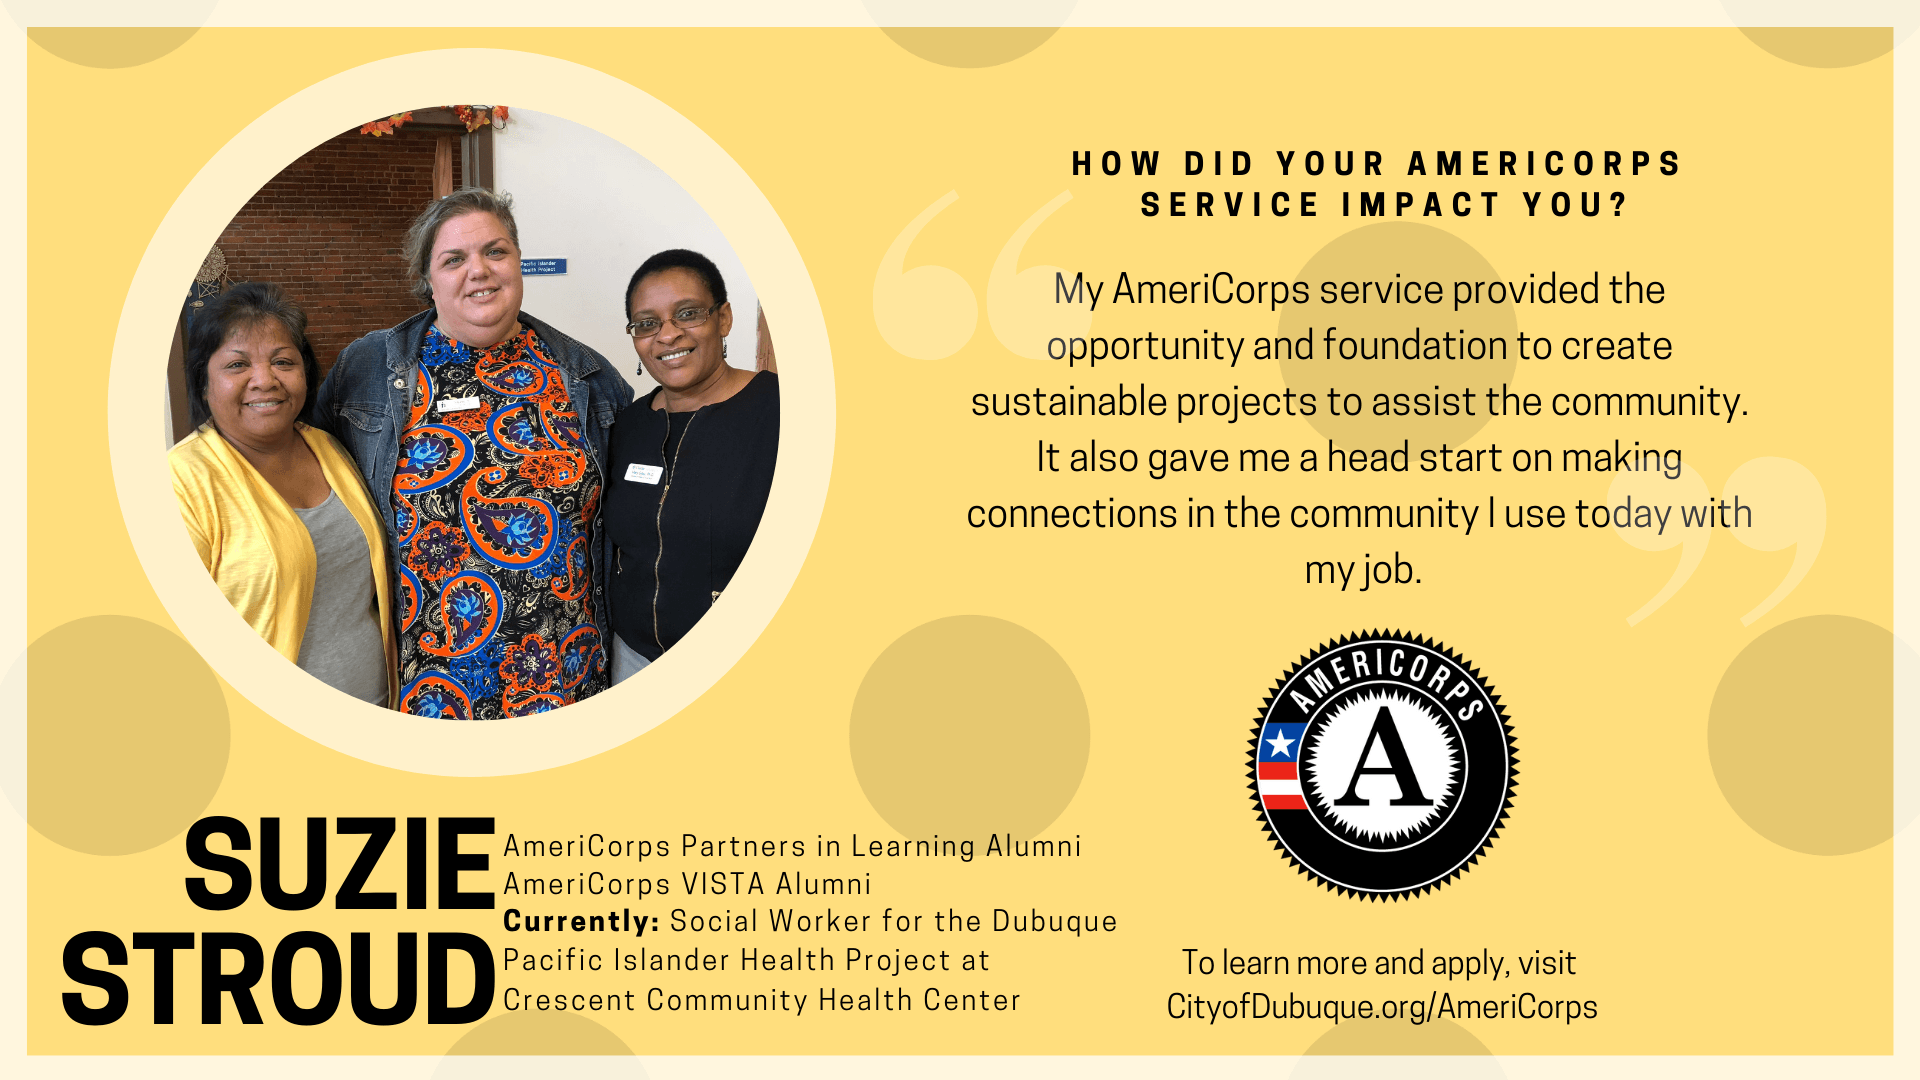 My AmeriCorps service provided the opportunity and foundation to create sustainable projects to assi